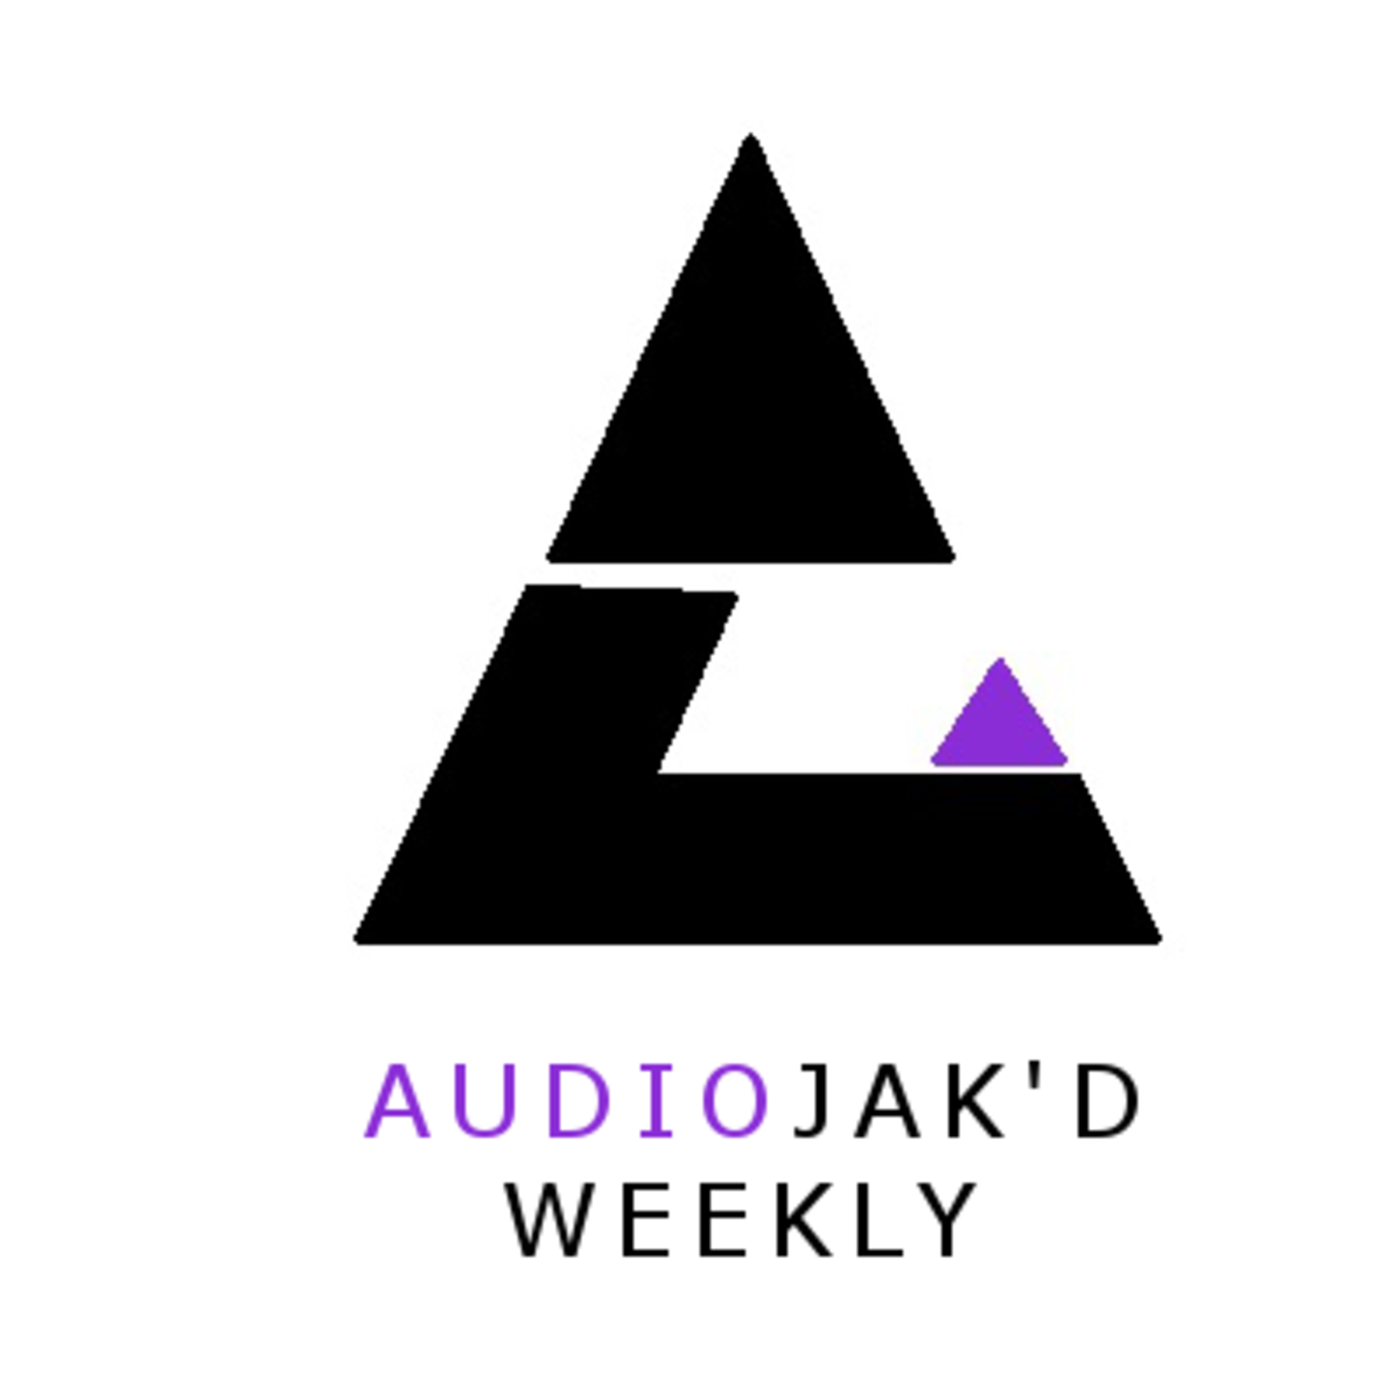 Audiojak'd Weekly 001